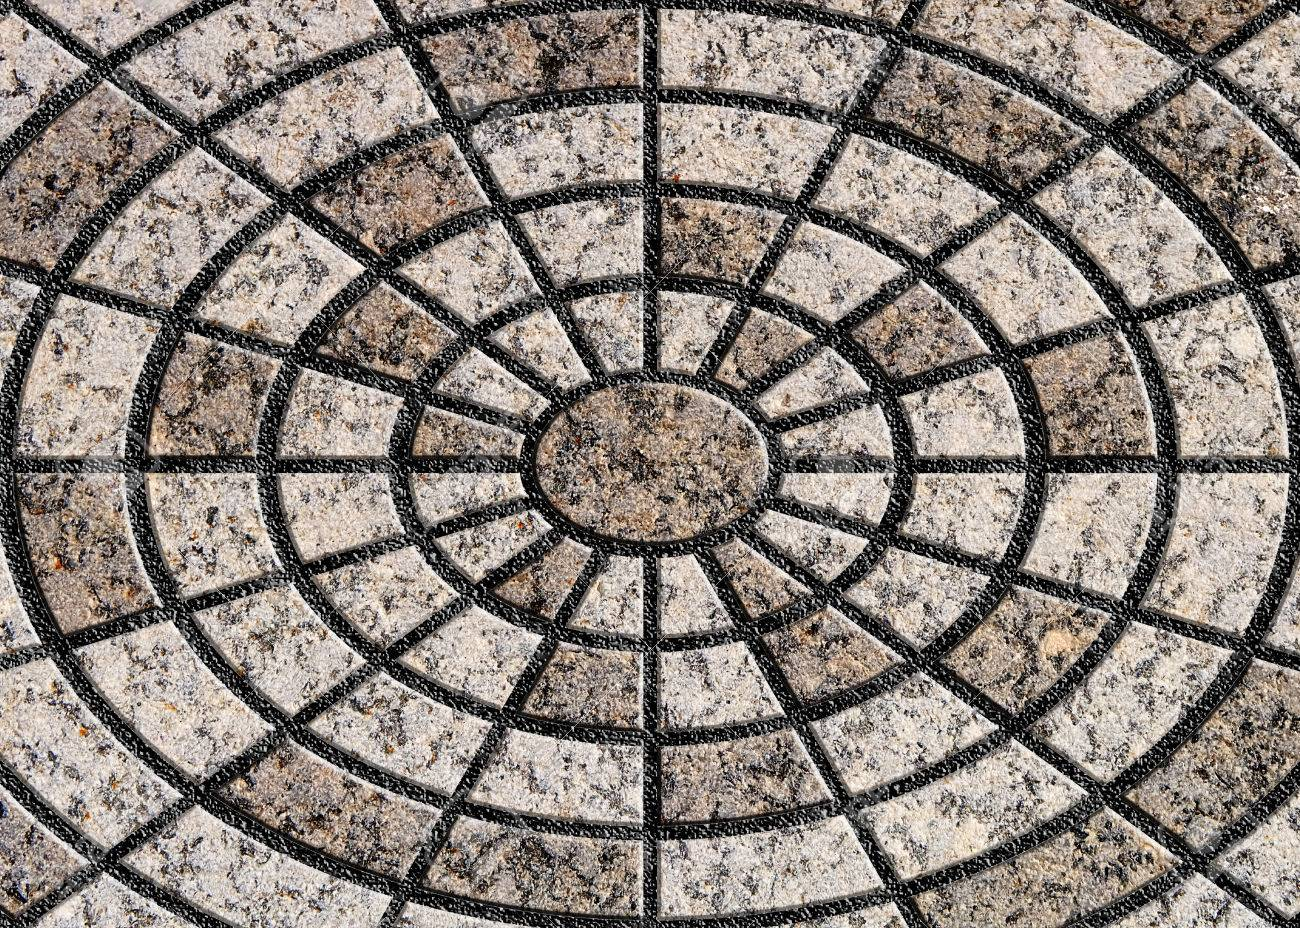 Circle Tiles Circle Design Stone Floor Tiles Stock Photo Picture And Royalty